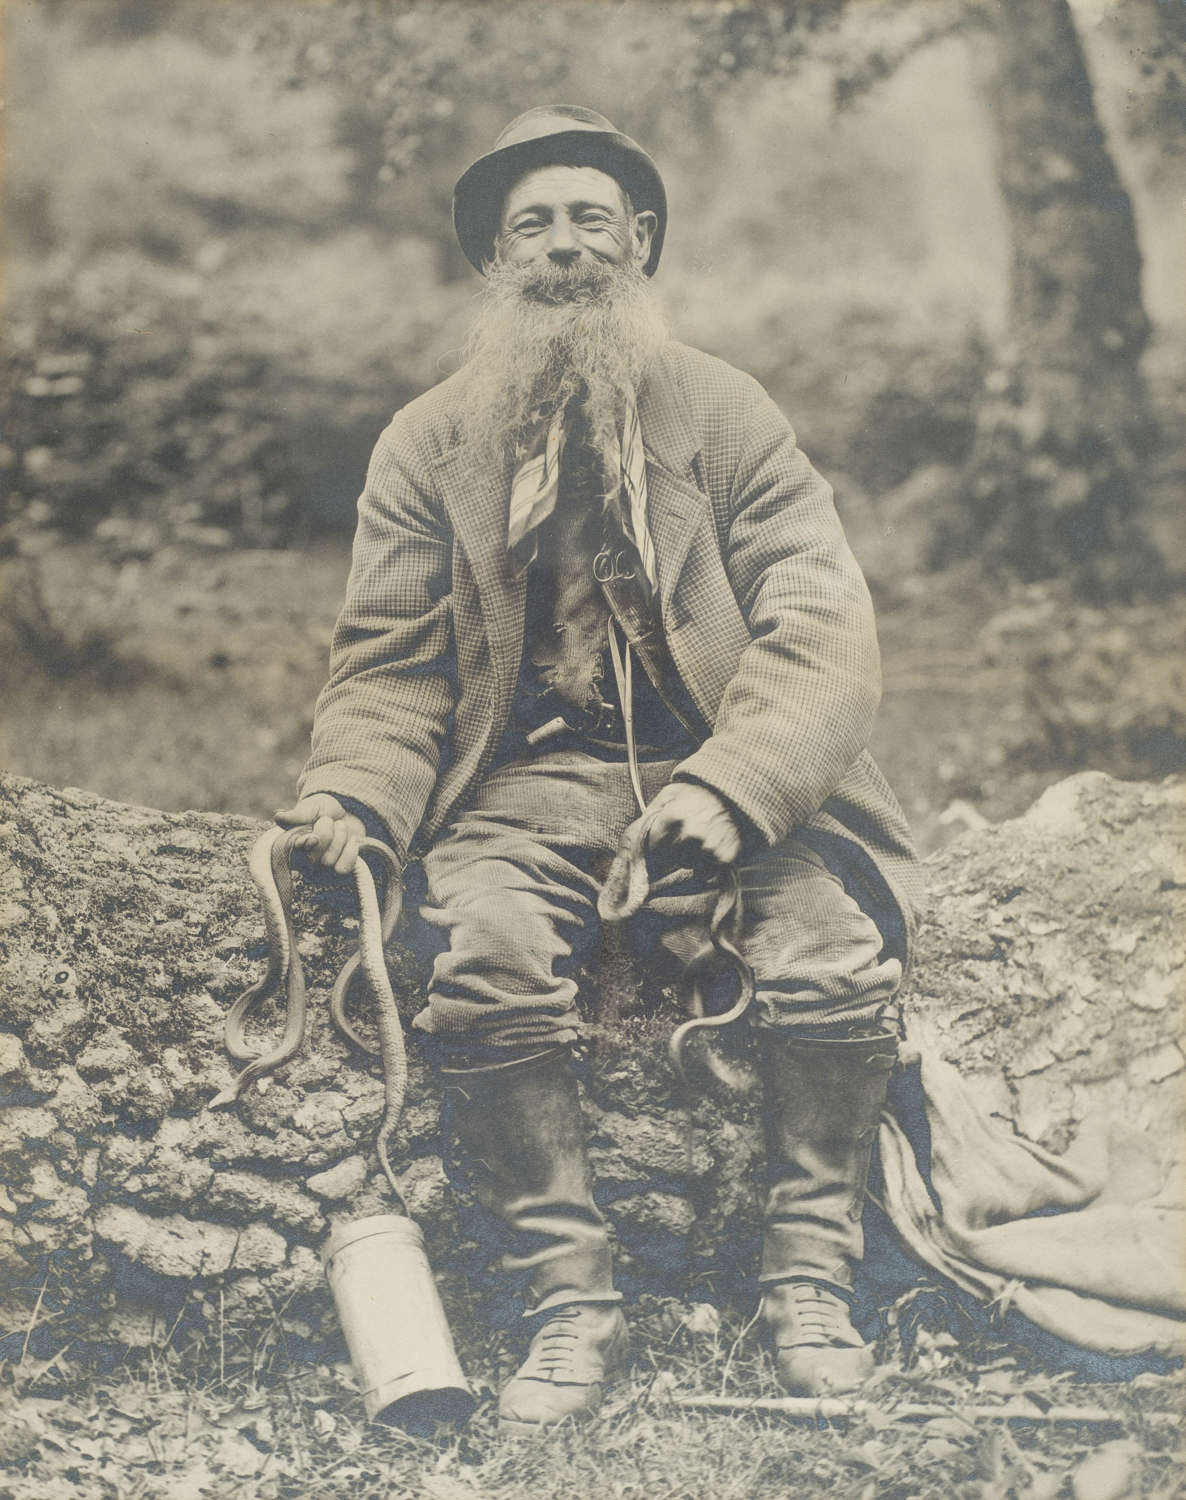 PHOTOGRAPH OF BRUSHER MILLS, THE NEW FOREST SNAKE CATCHER